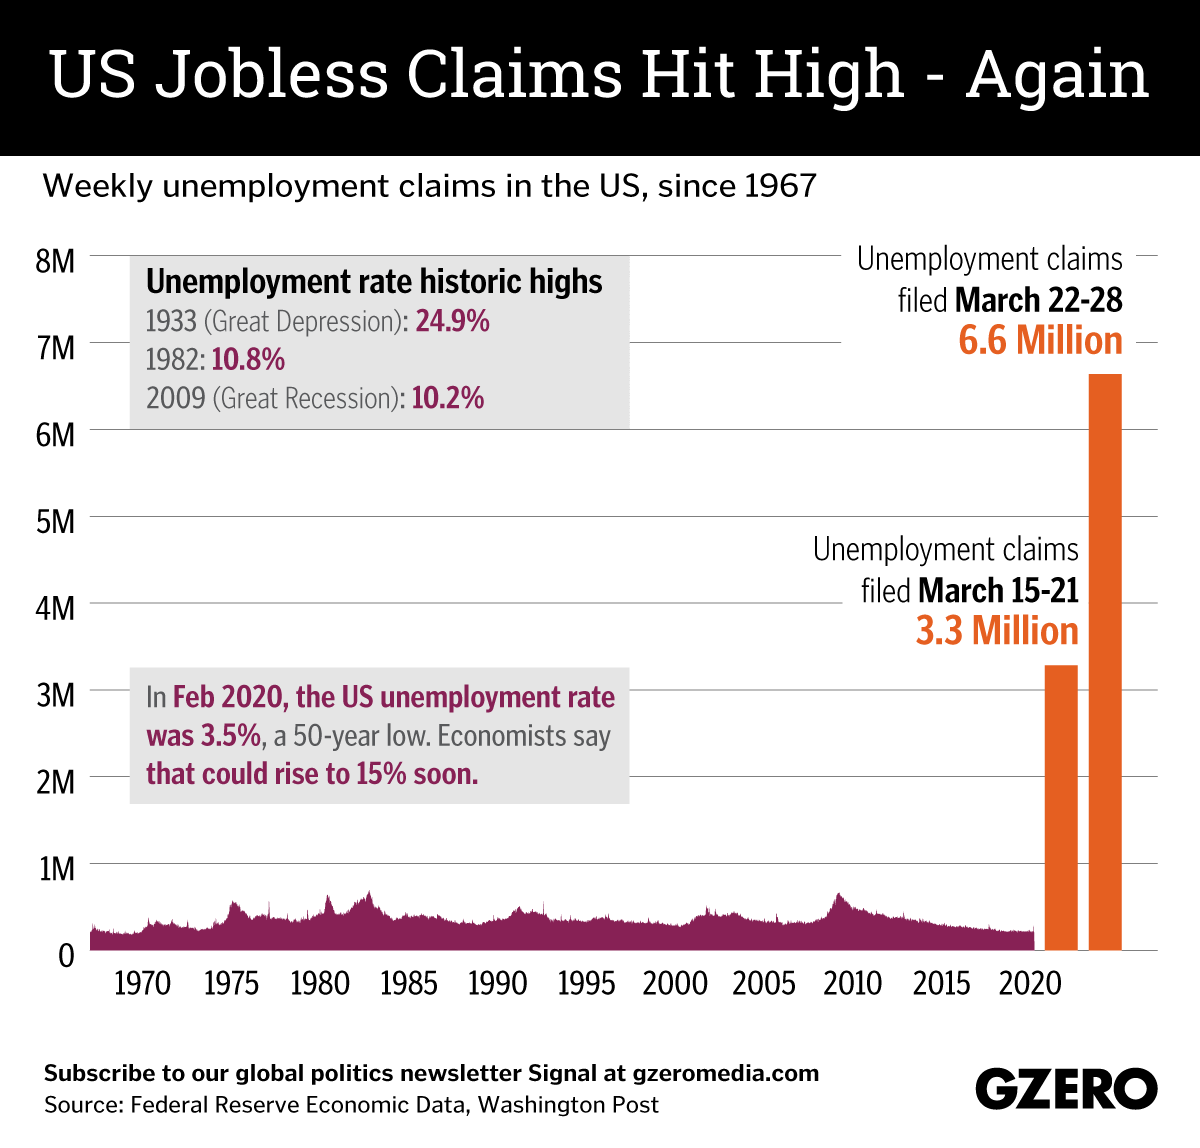 The Graphic Truth: US jobless claims hit high – again